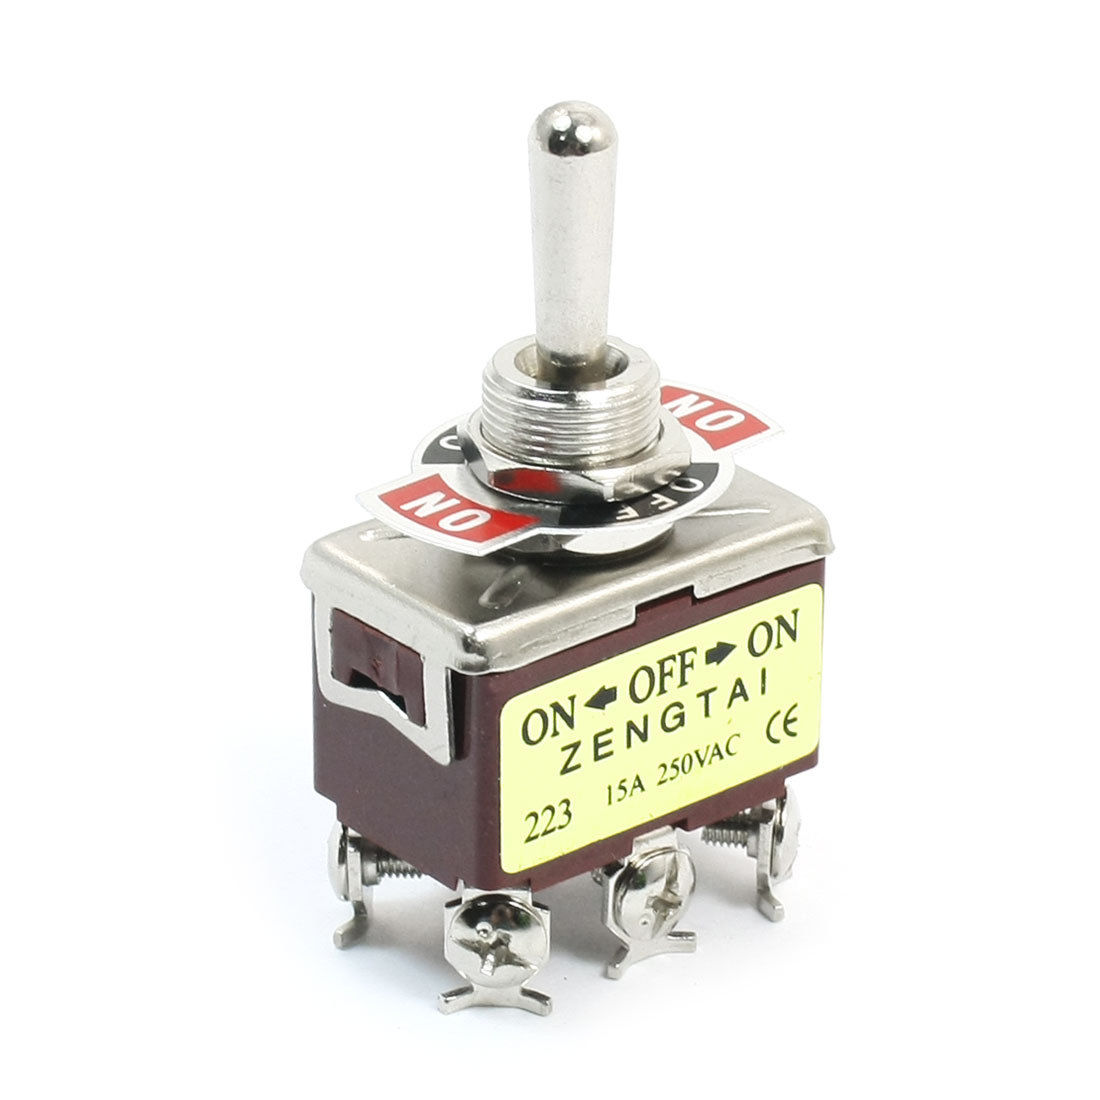 Momentary DPDT (ON)-OFF-(ON) 3 Position 6Pin  Toggle Switch AC 250V 15A 5 pieces lot ac 6a 250v 10a 125v 5x 6pin dpdt on off on position snap boat rocker switches